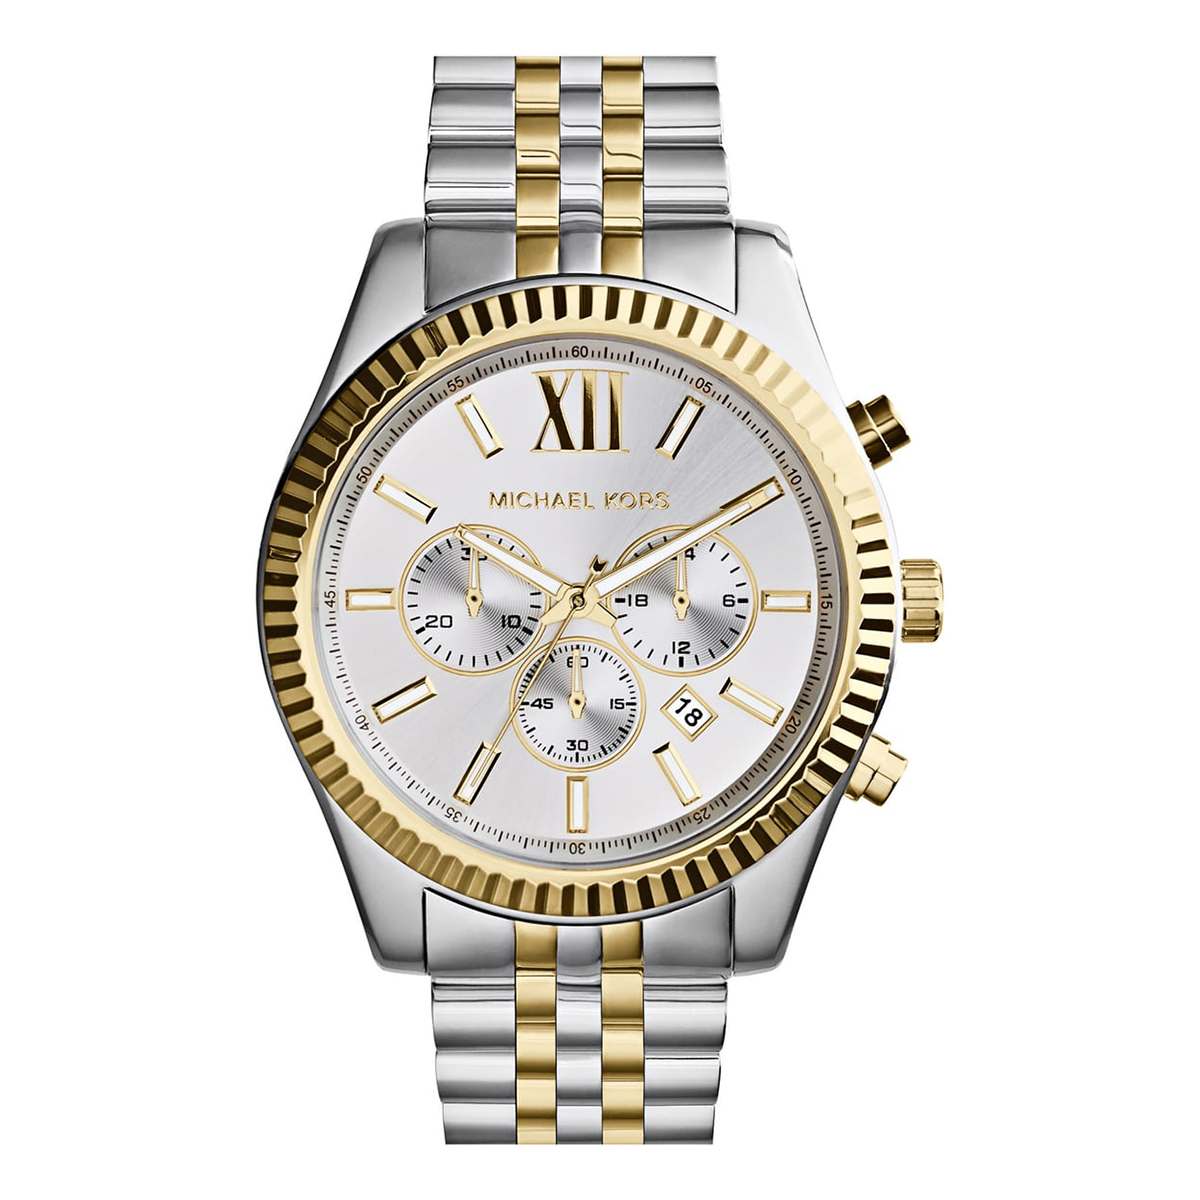 Michael Kors Large Lexington Chronograph Watch